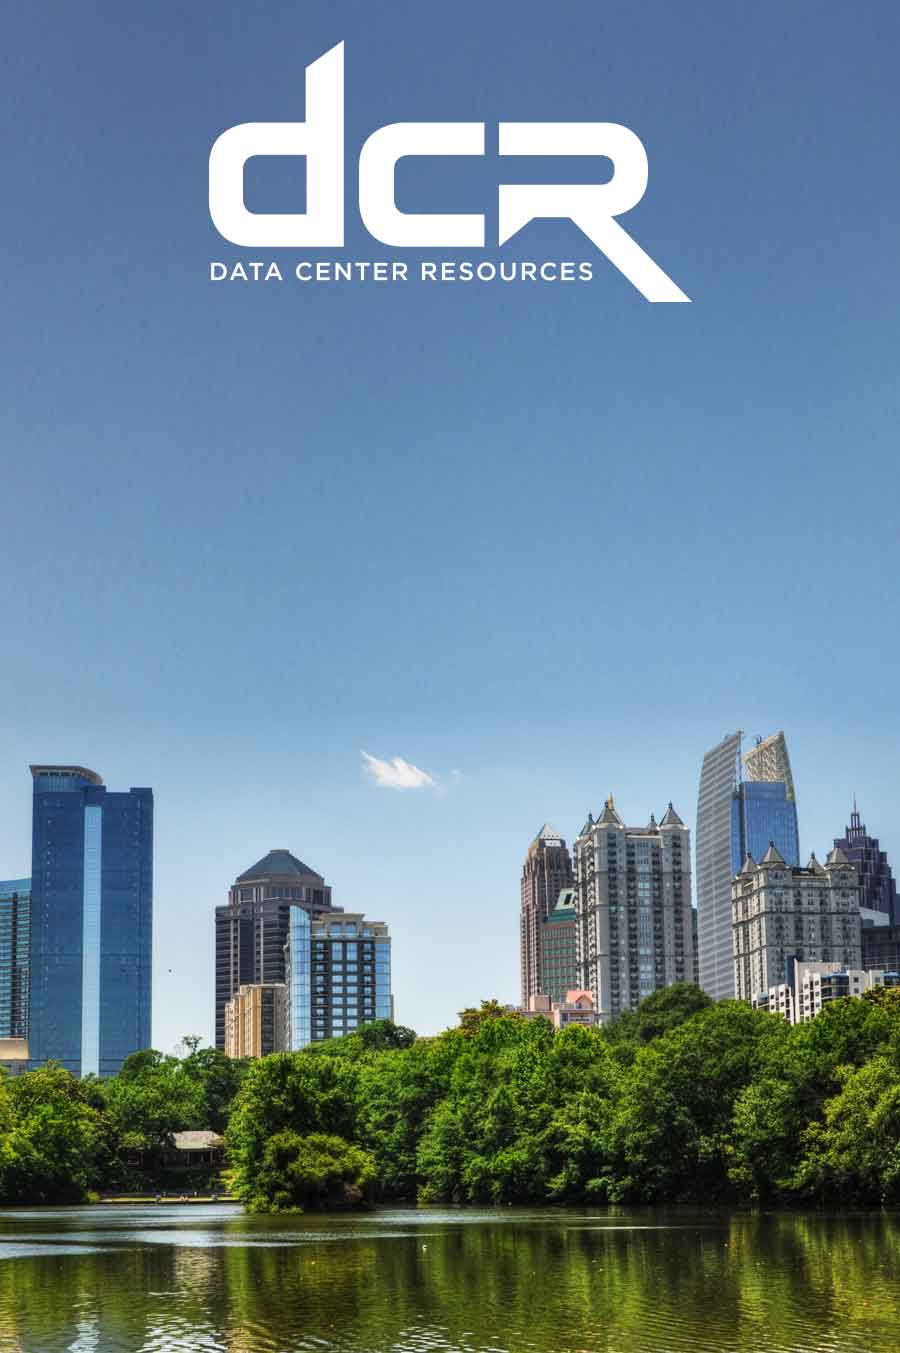 Contact us at the Atlanta Data Center Resources Office